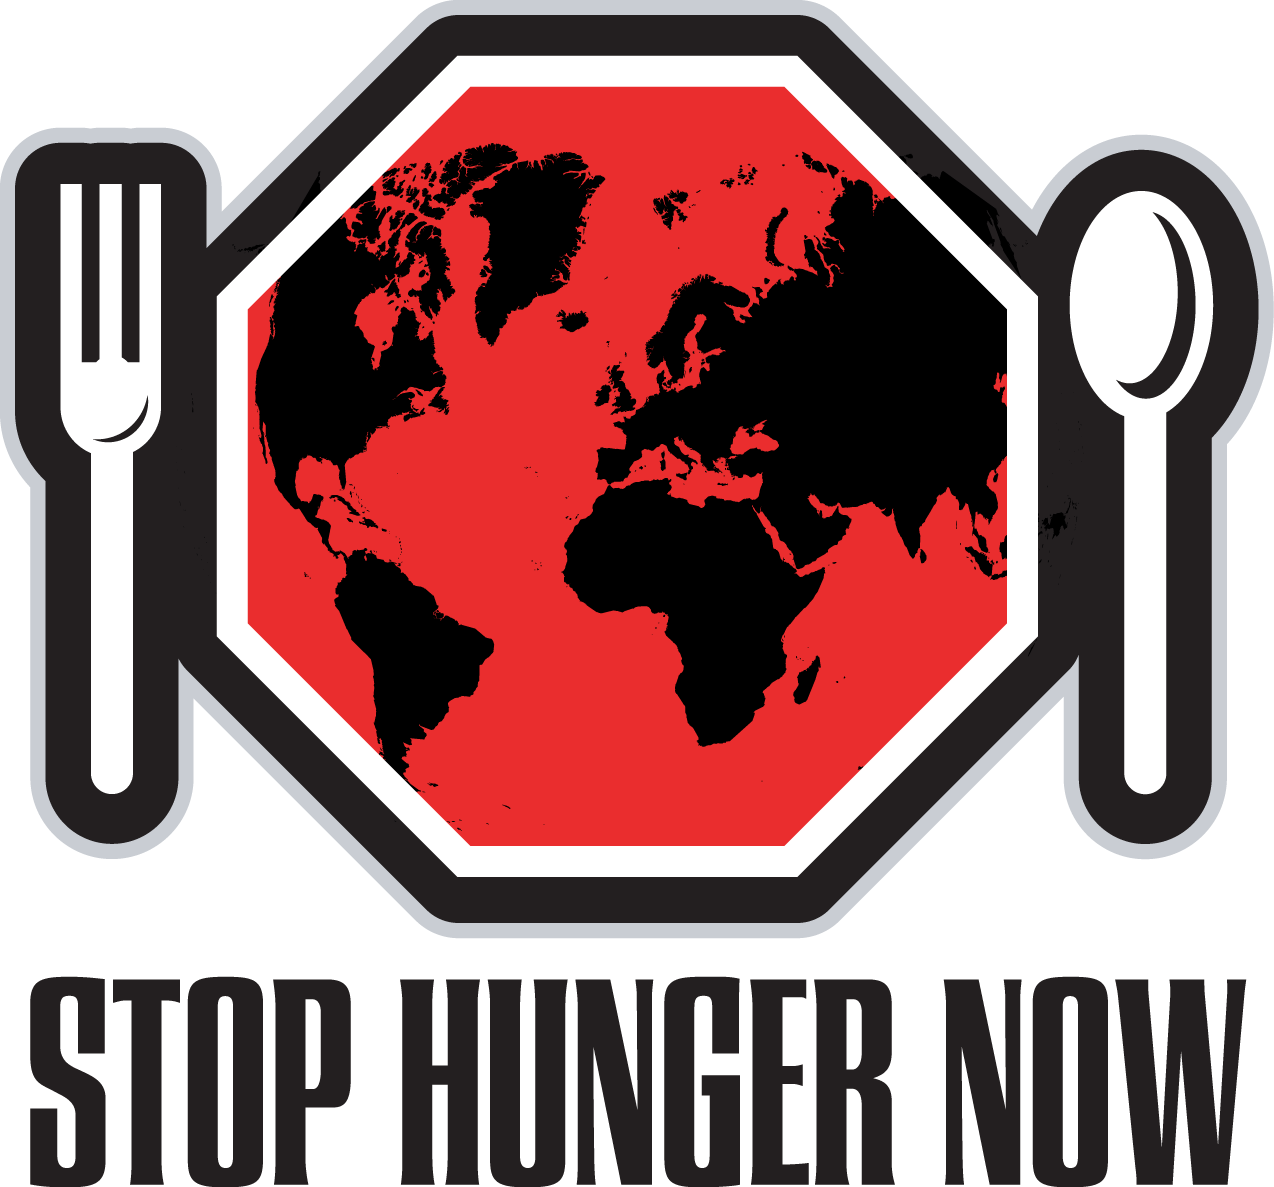 Poverty clipart less fortunate.  stop hunger now